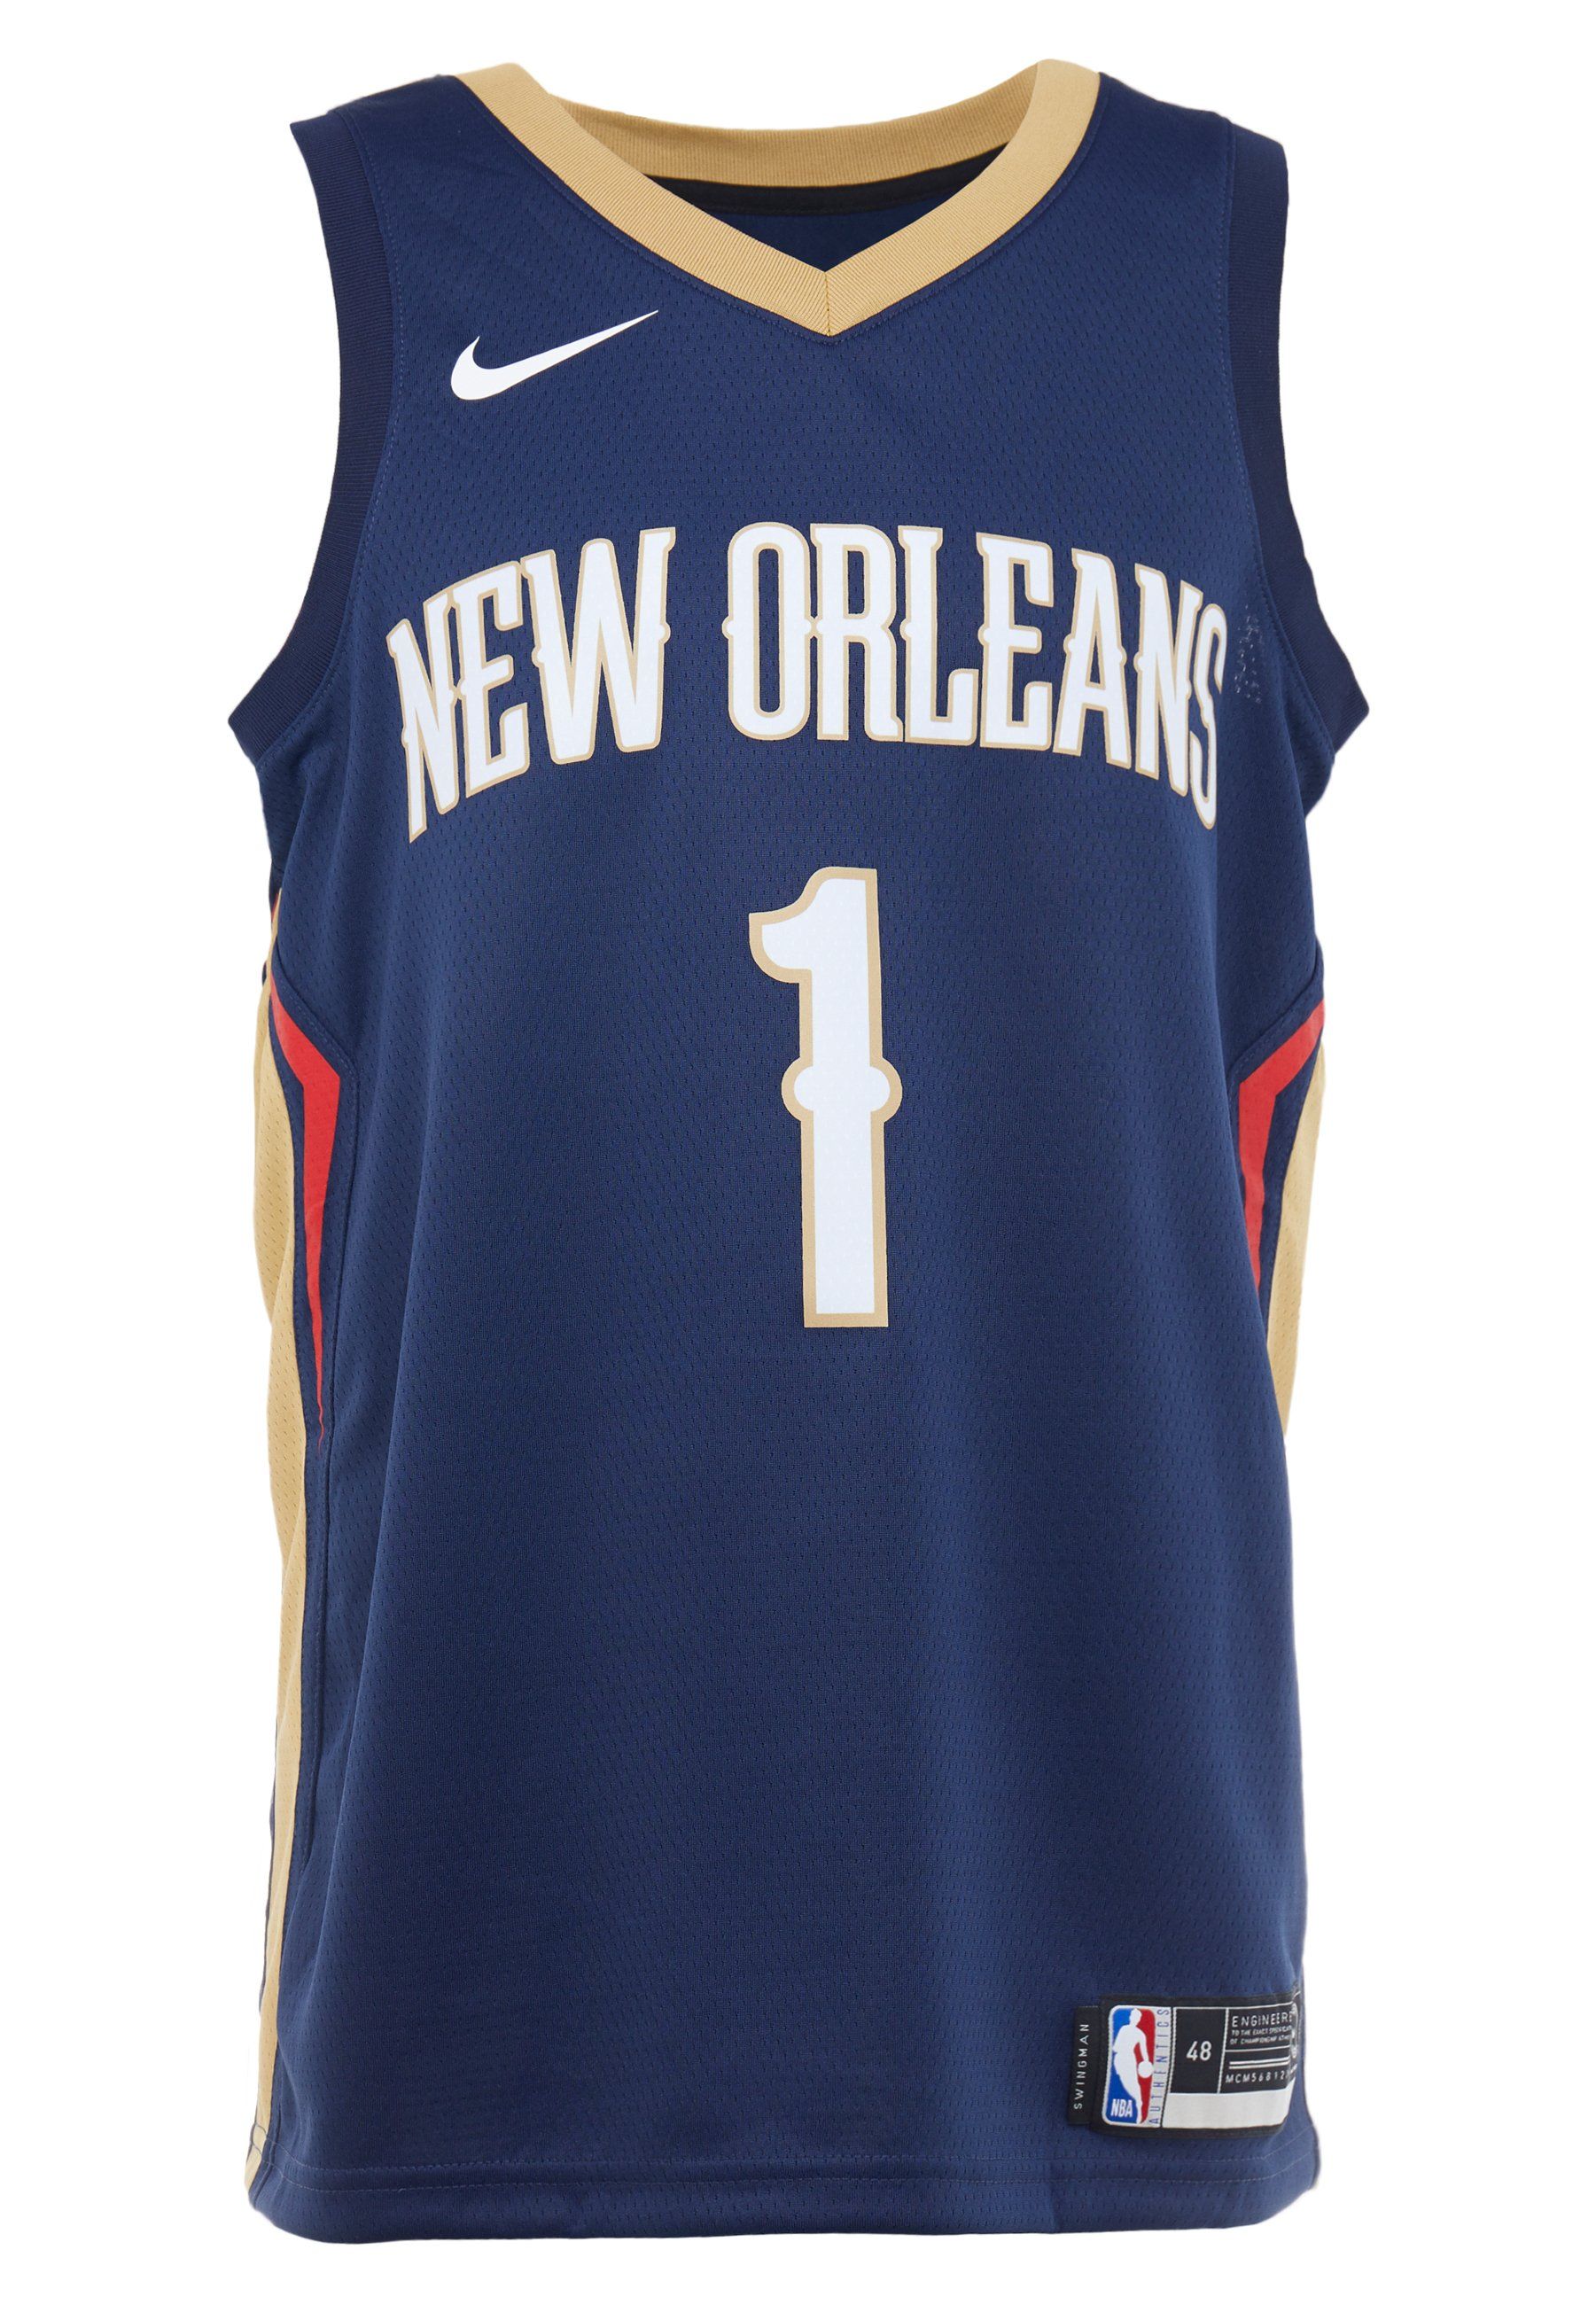 Nike Performance NBA ZION WILLIAMSON NEW ORLEANS PELICANS